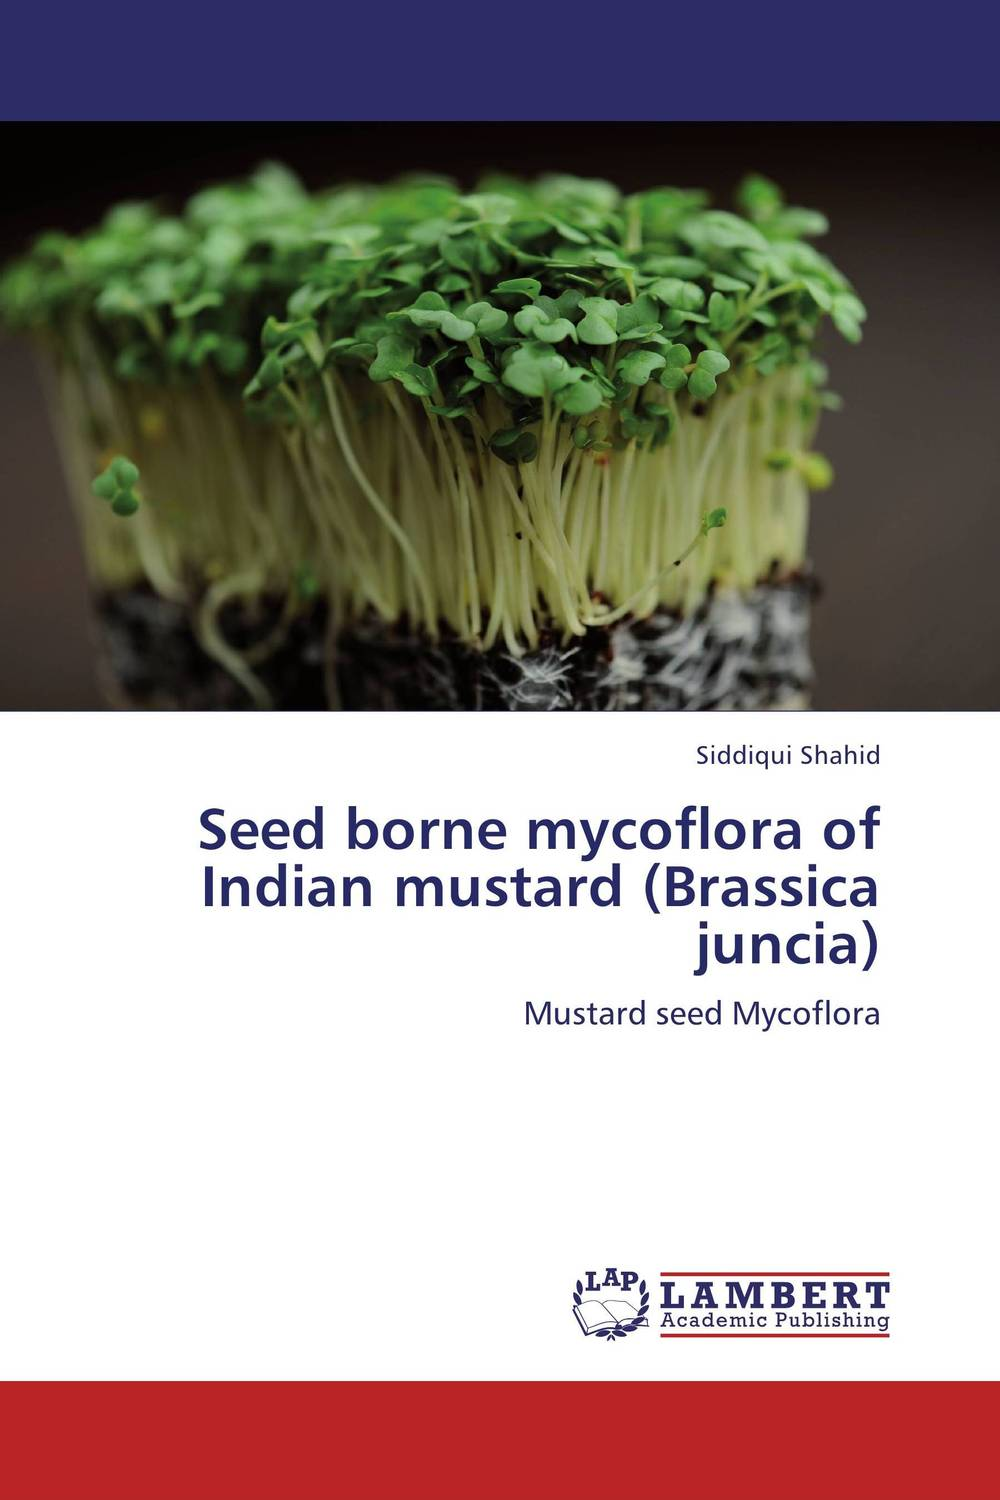 Seed borne mycoflora of Indian mustard (Brassica juncia) seed dormancy and germination